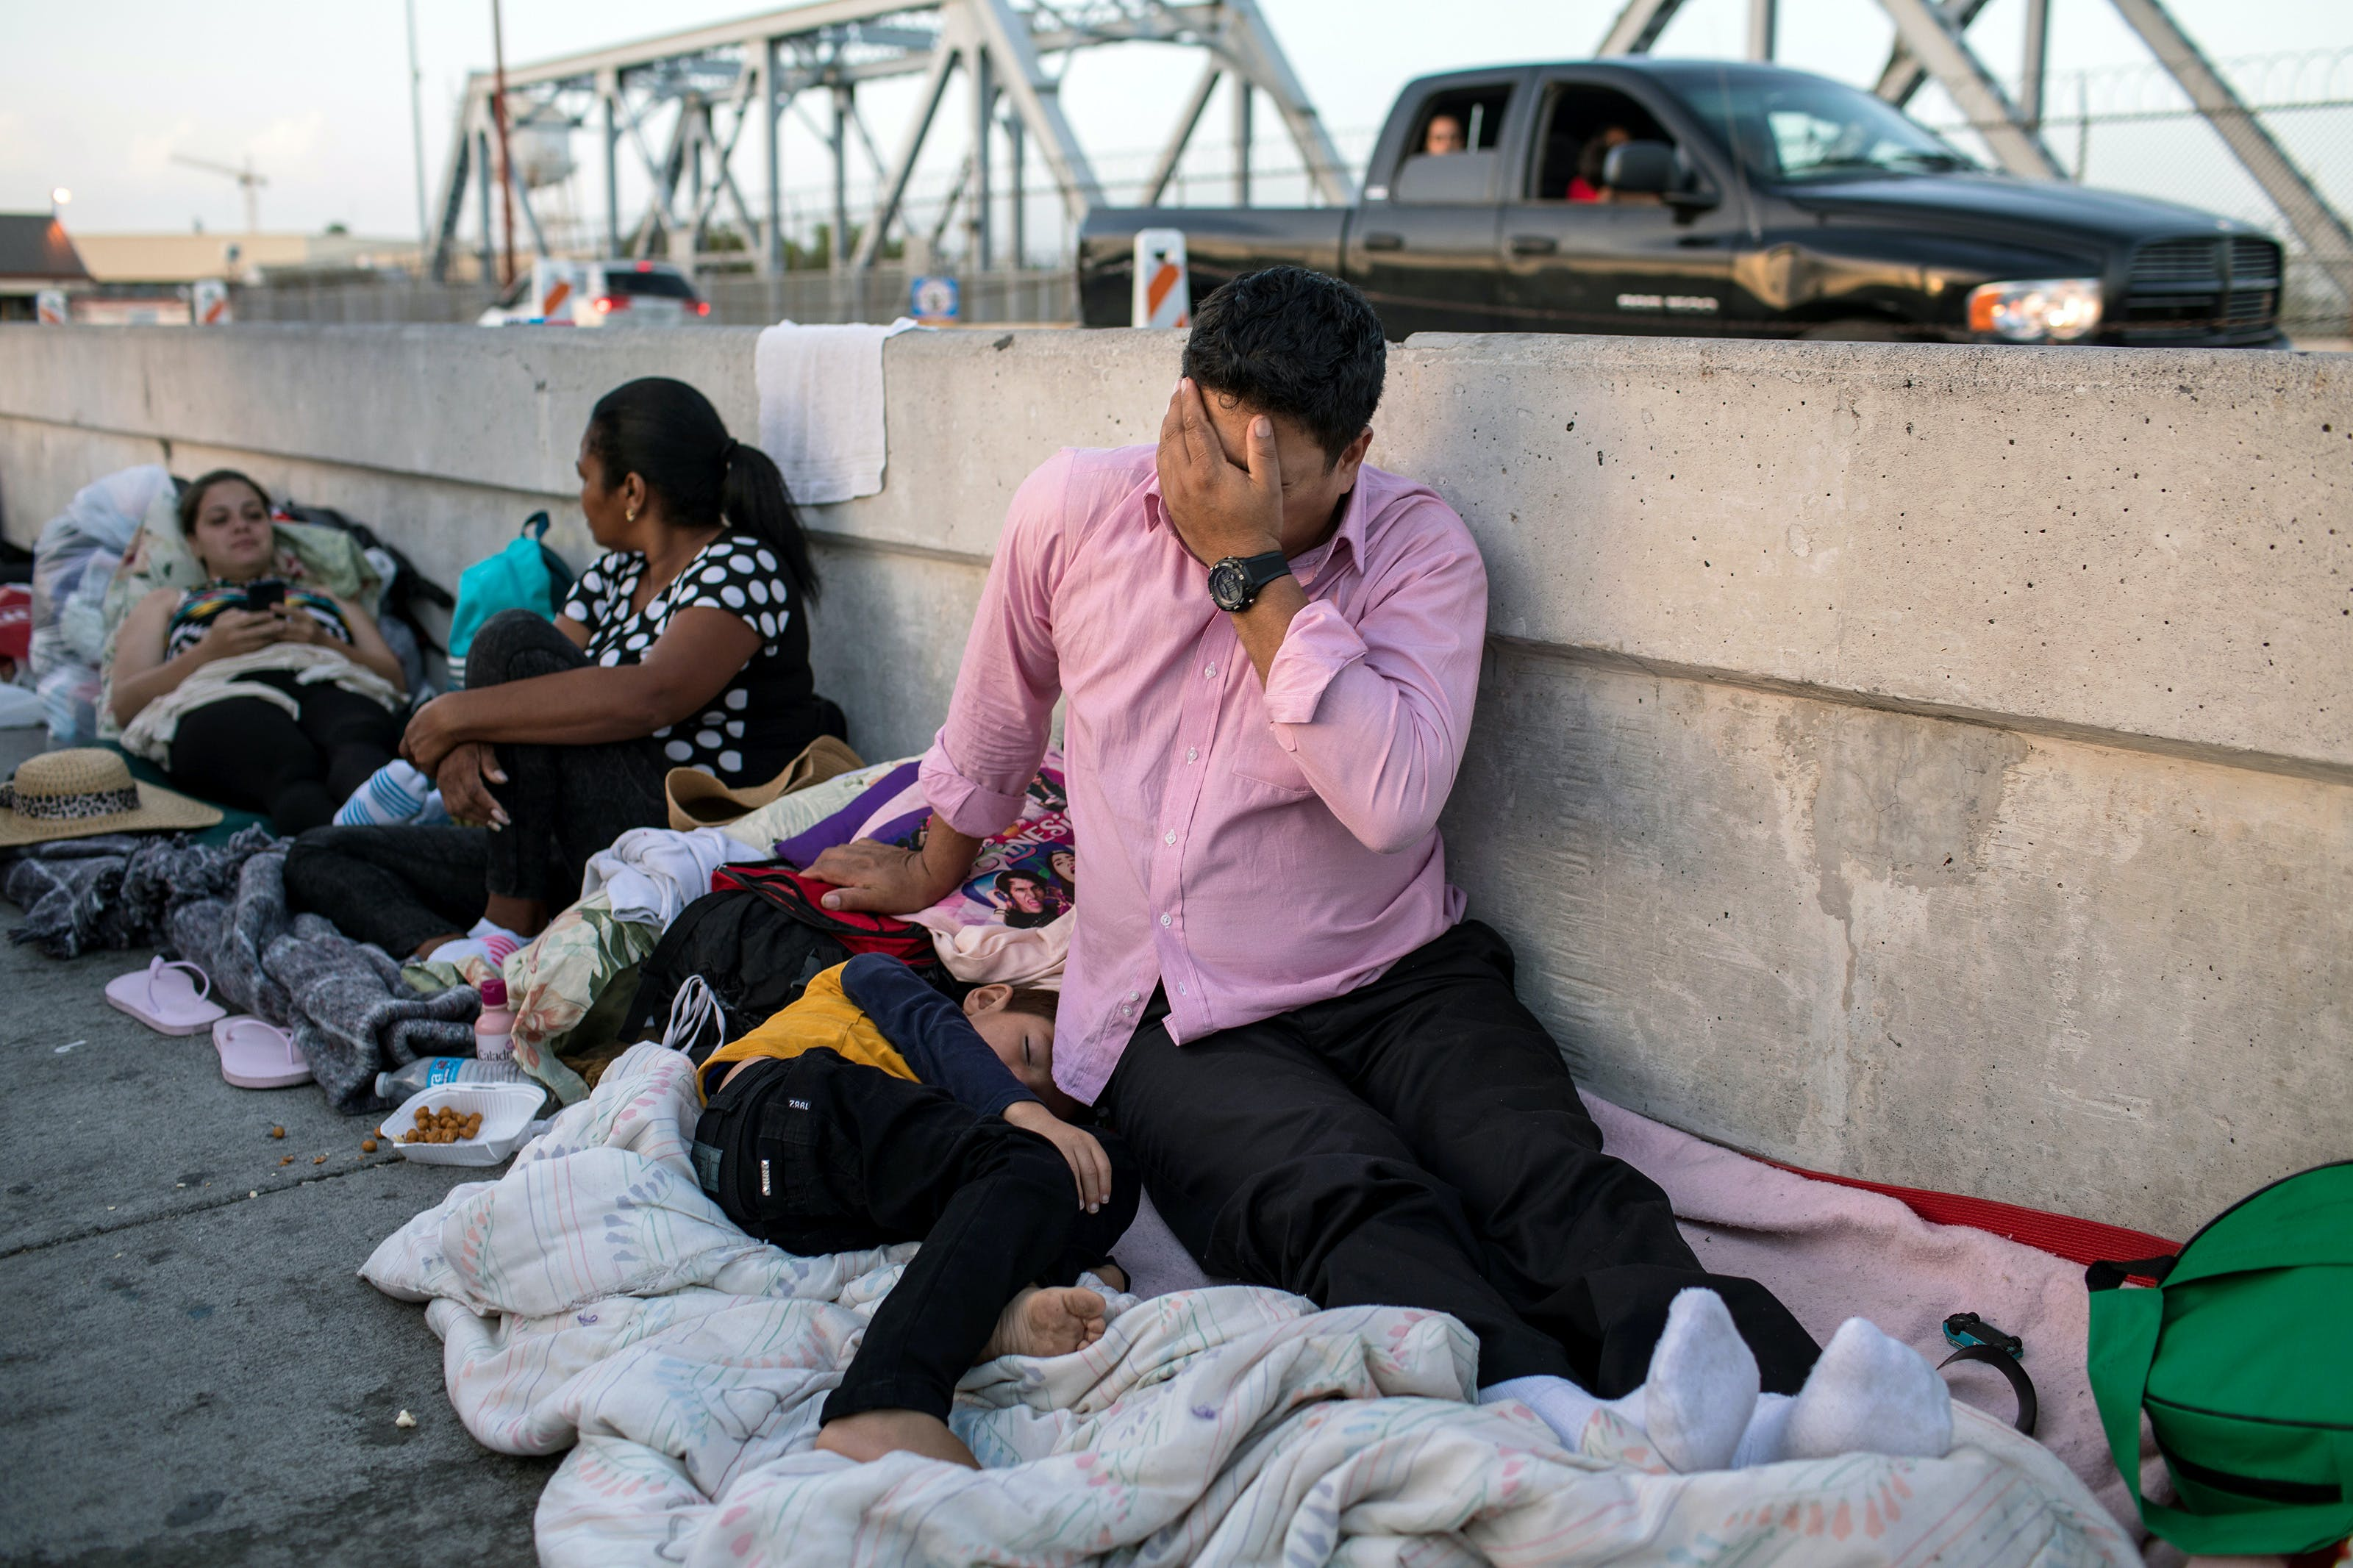 MATAMOROS, MX - JUNE 28: A Honduran man and his 5-year-old son wait on the Mexican side of the Brownsville